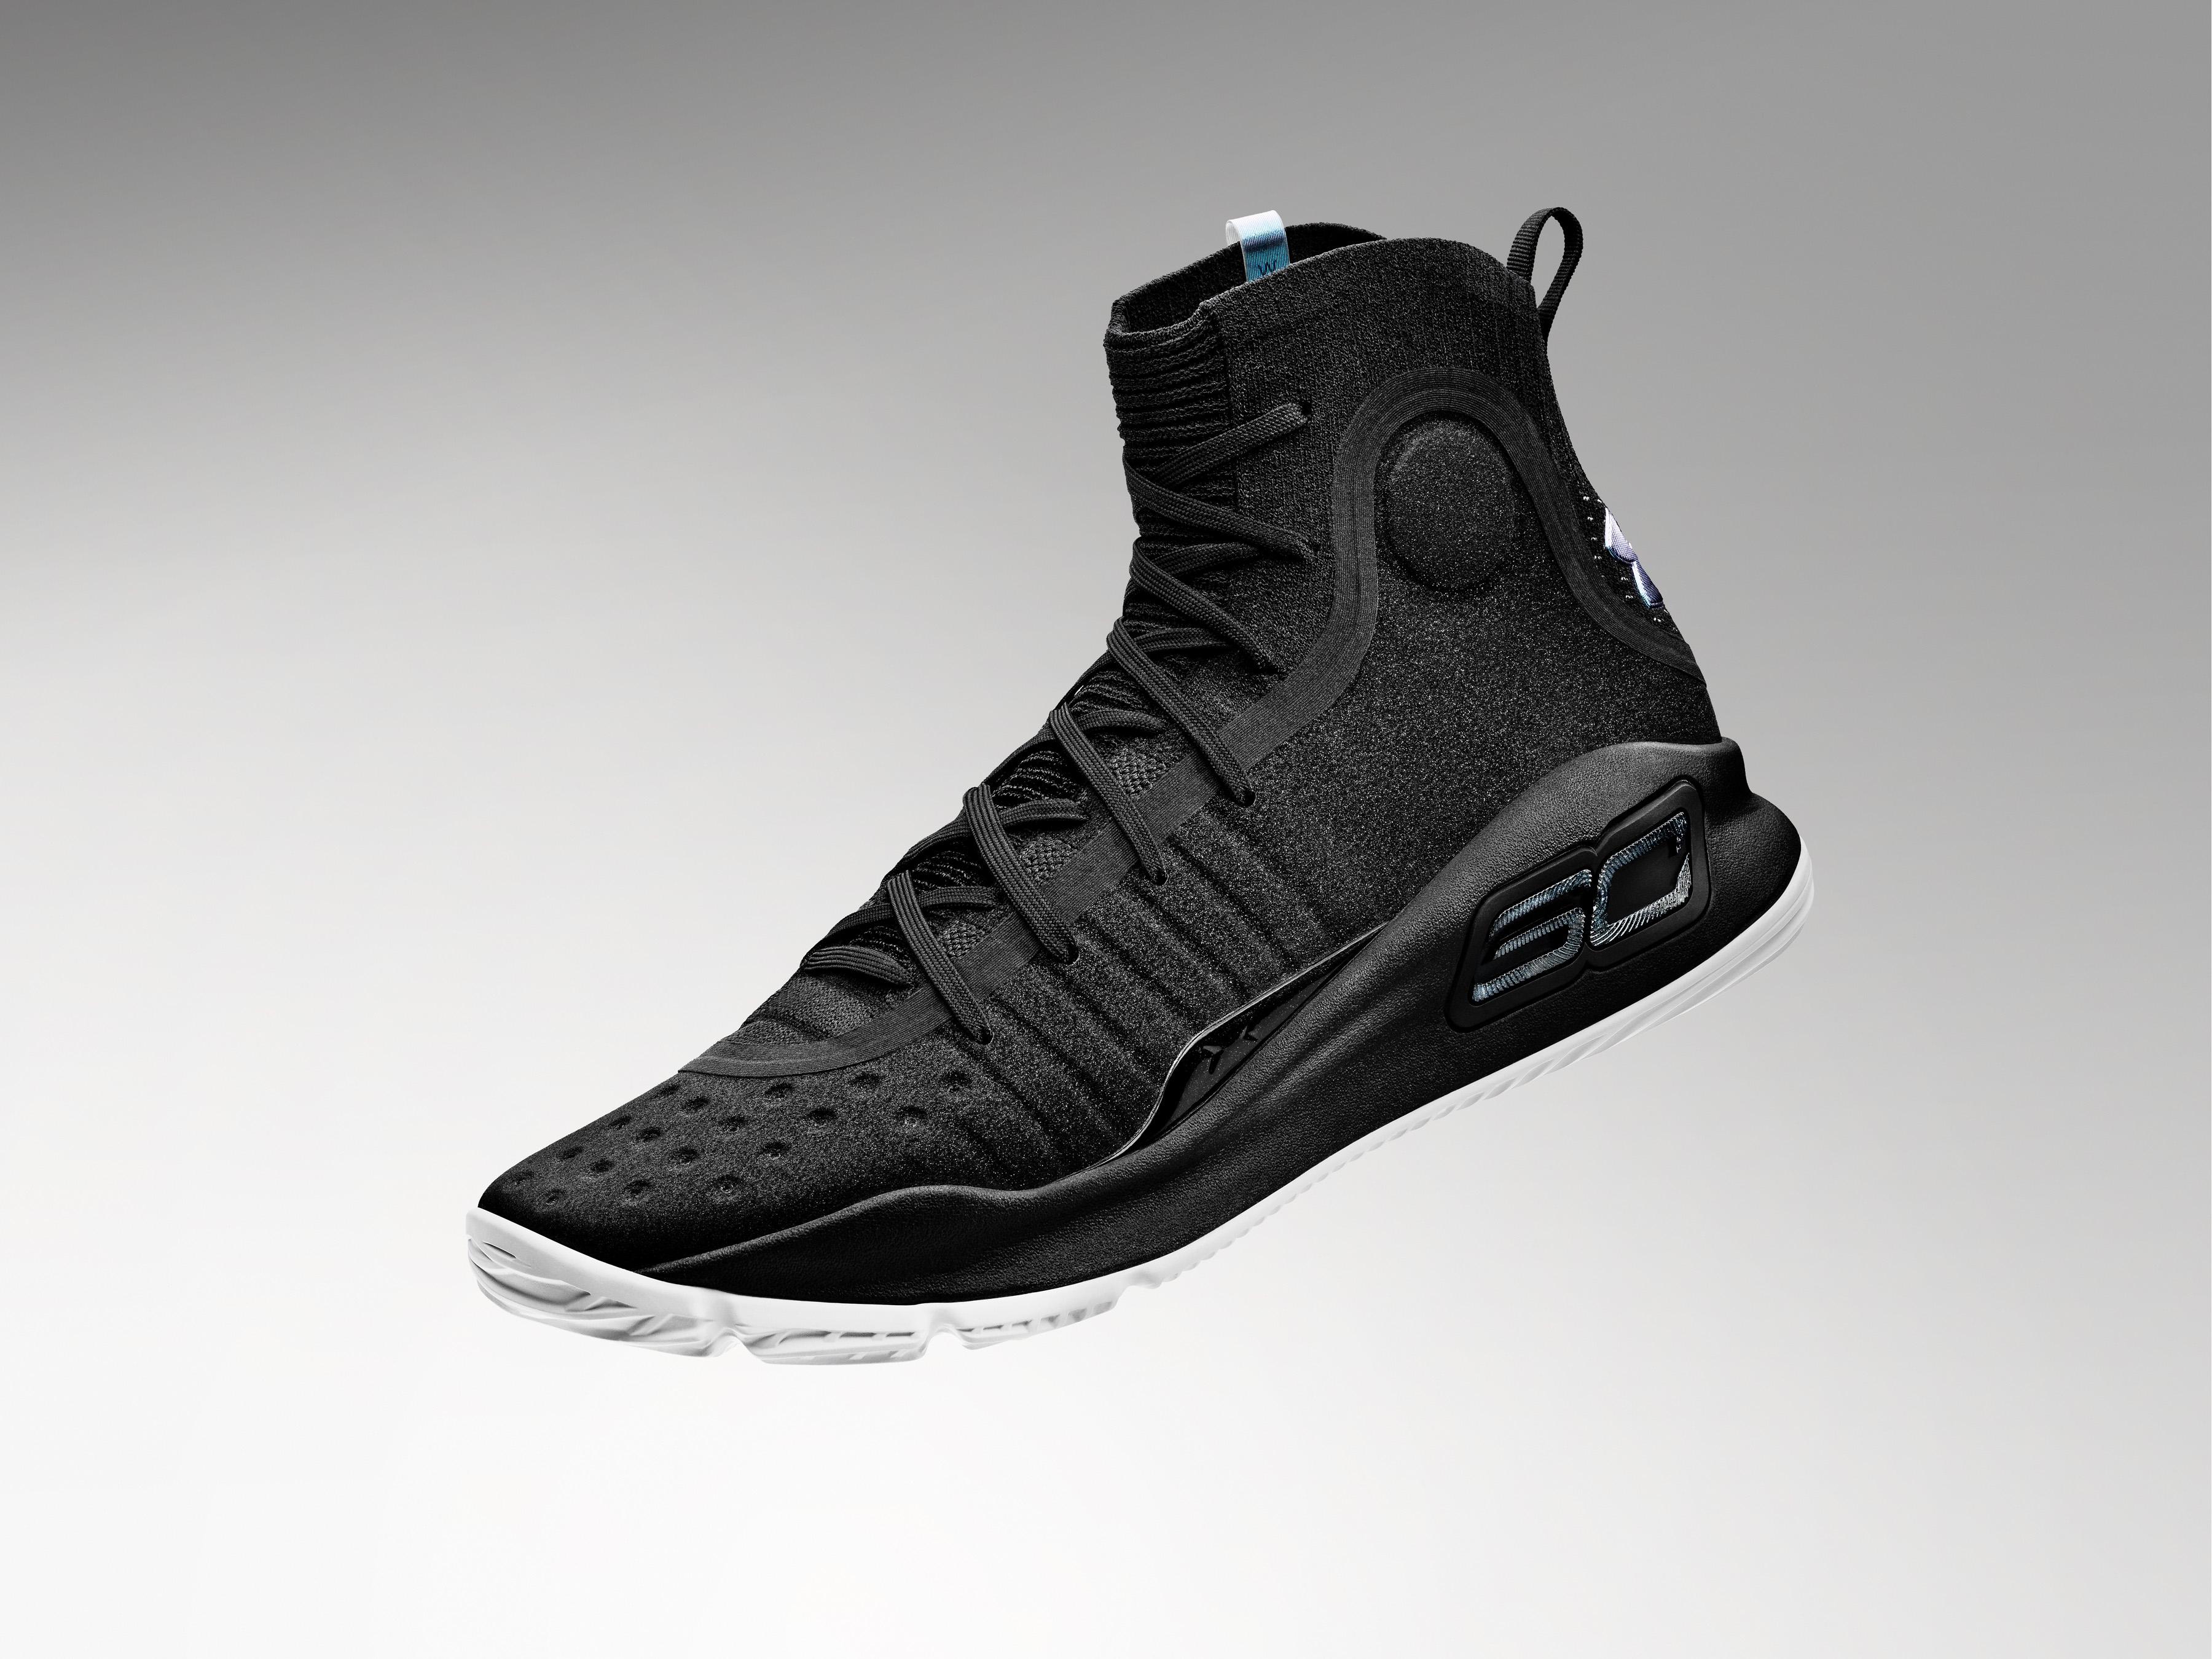 7605bdabef40 ... more color ways of the Curry 4 in the near future so make sure you keep  an eye out for following posts to see what Under Armour might be cooking up.